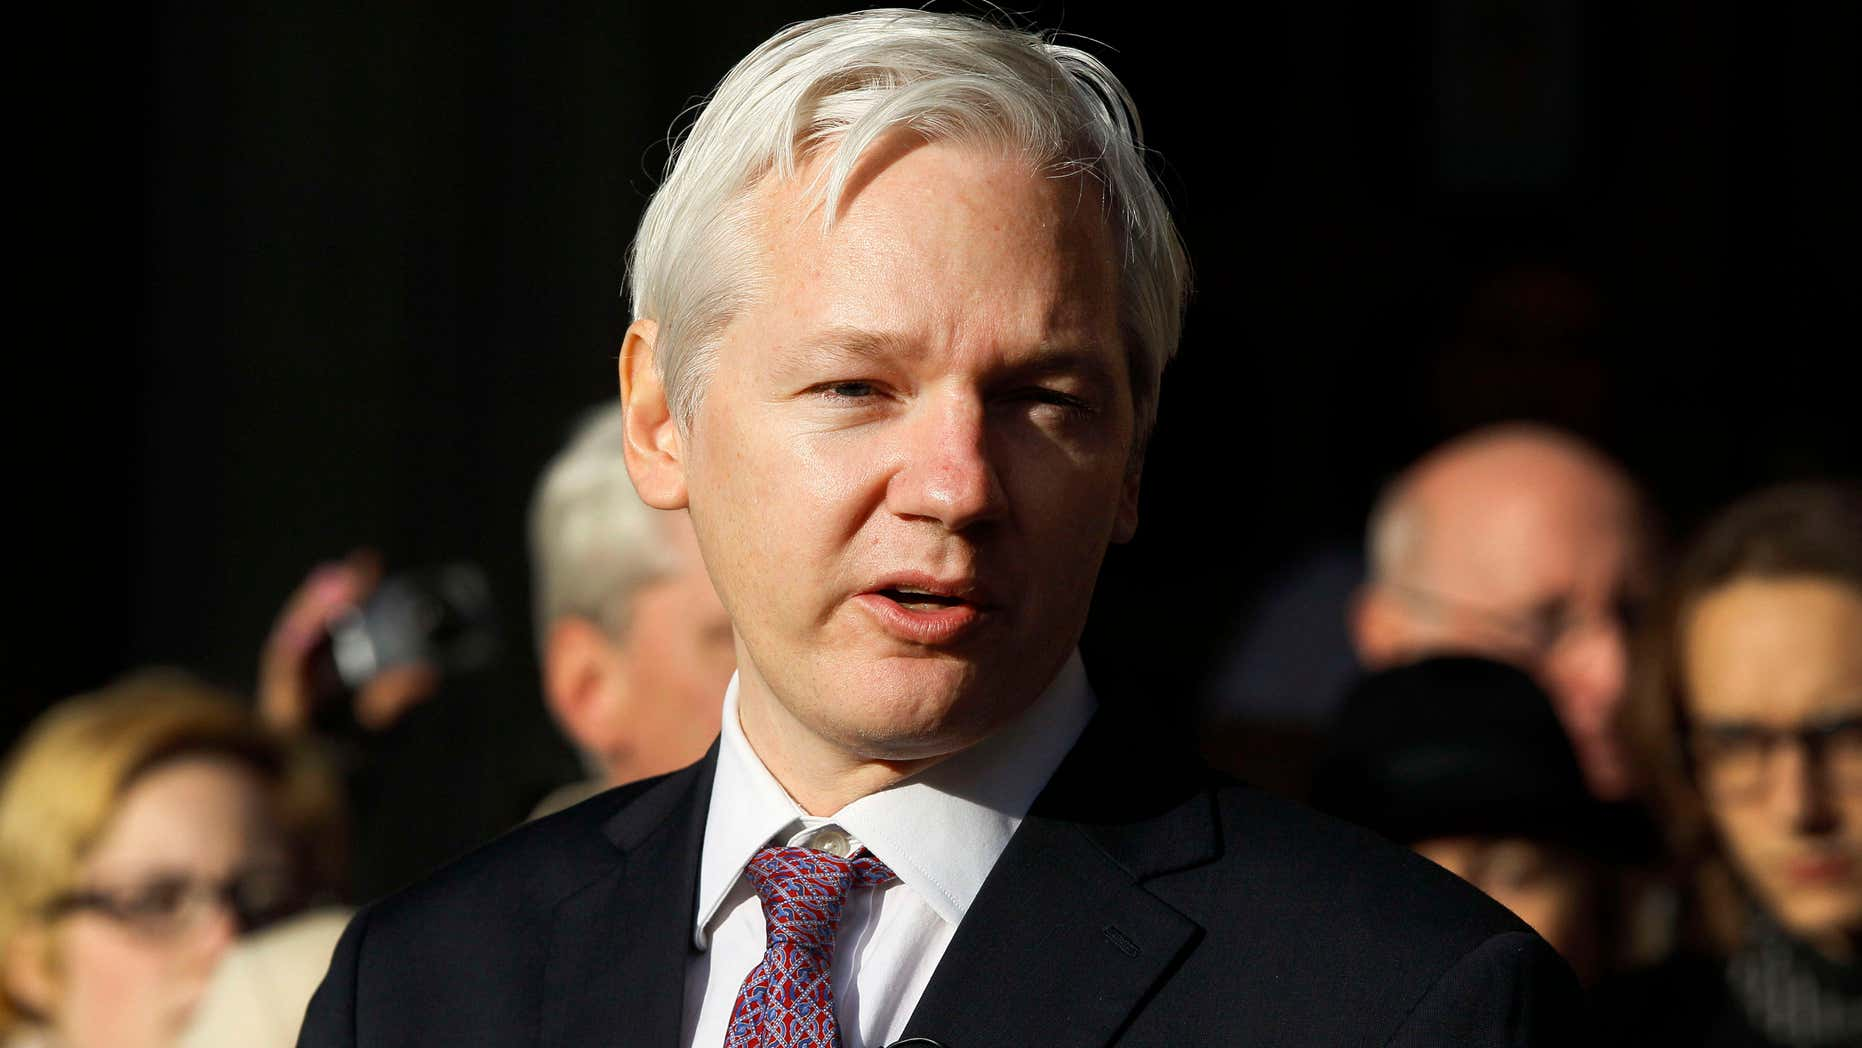 FILE - In this Dec. 5, 2011 file photo, WikiLeaks founder Julian Assange makes a statement to media gathered outside the High Court in London.